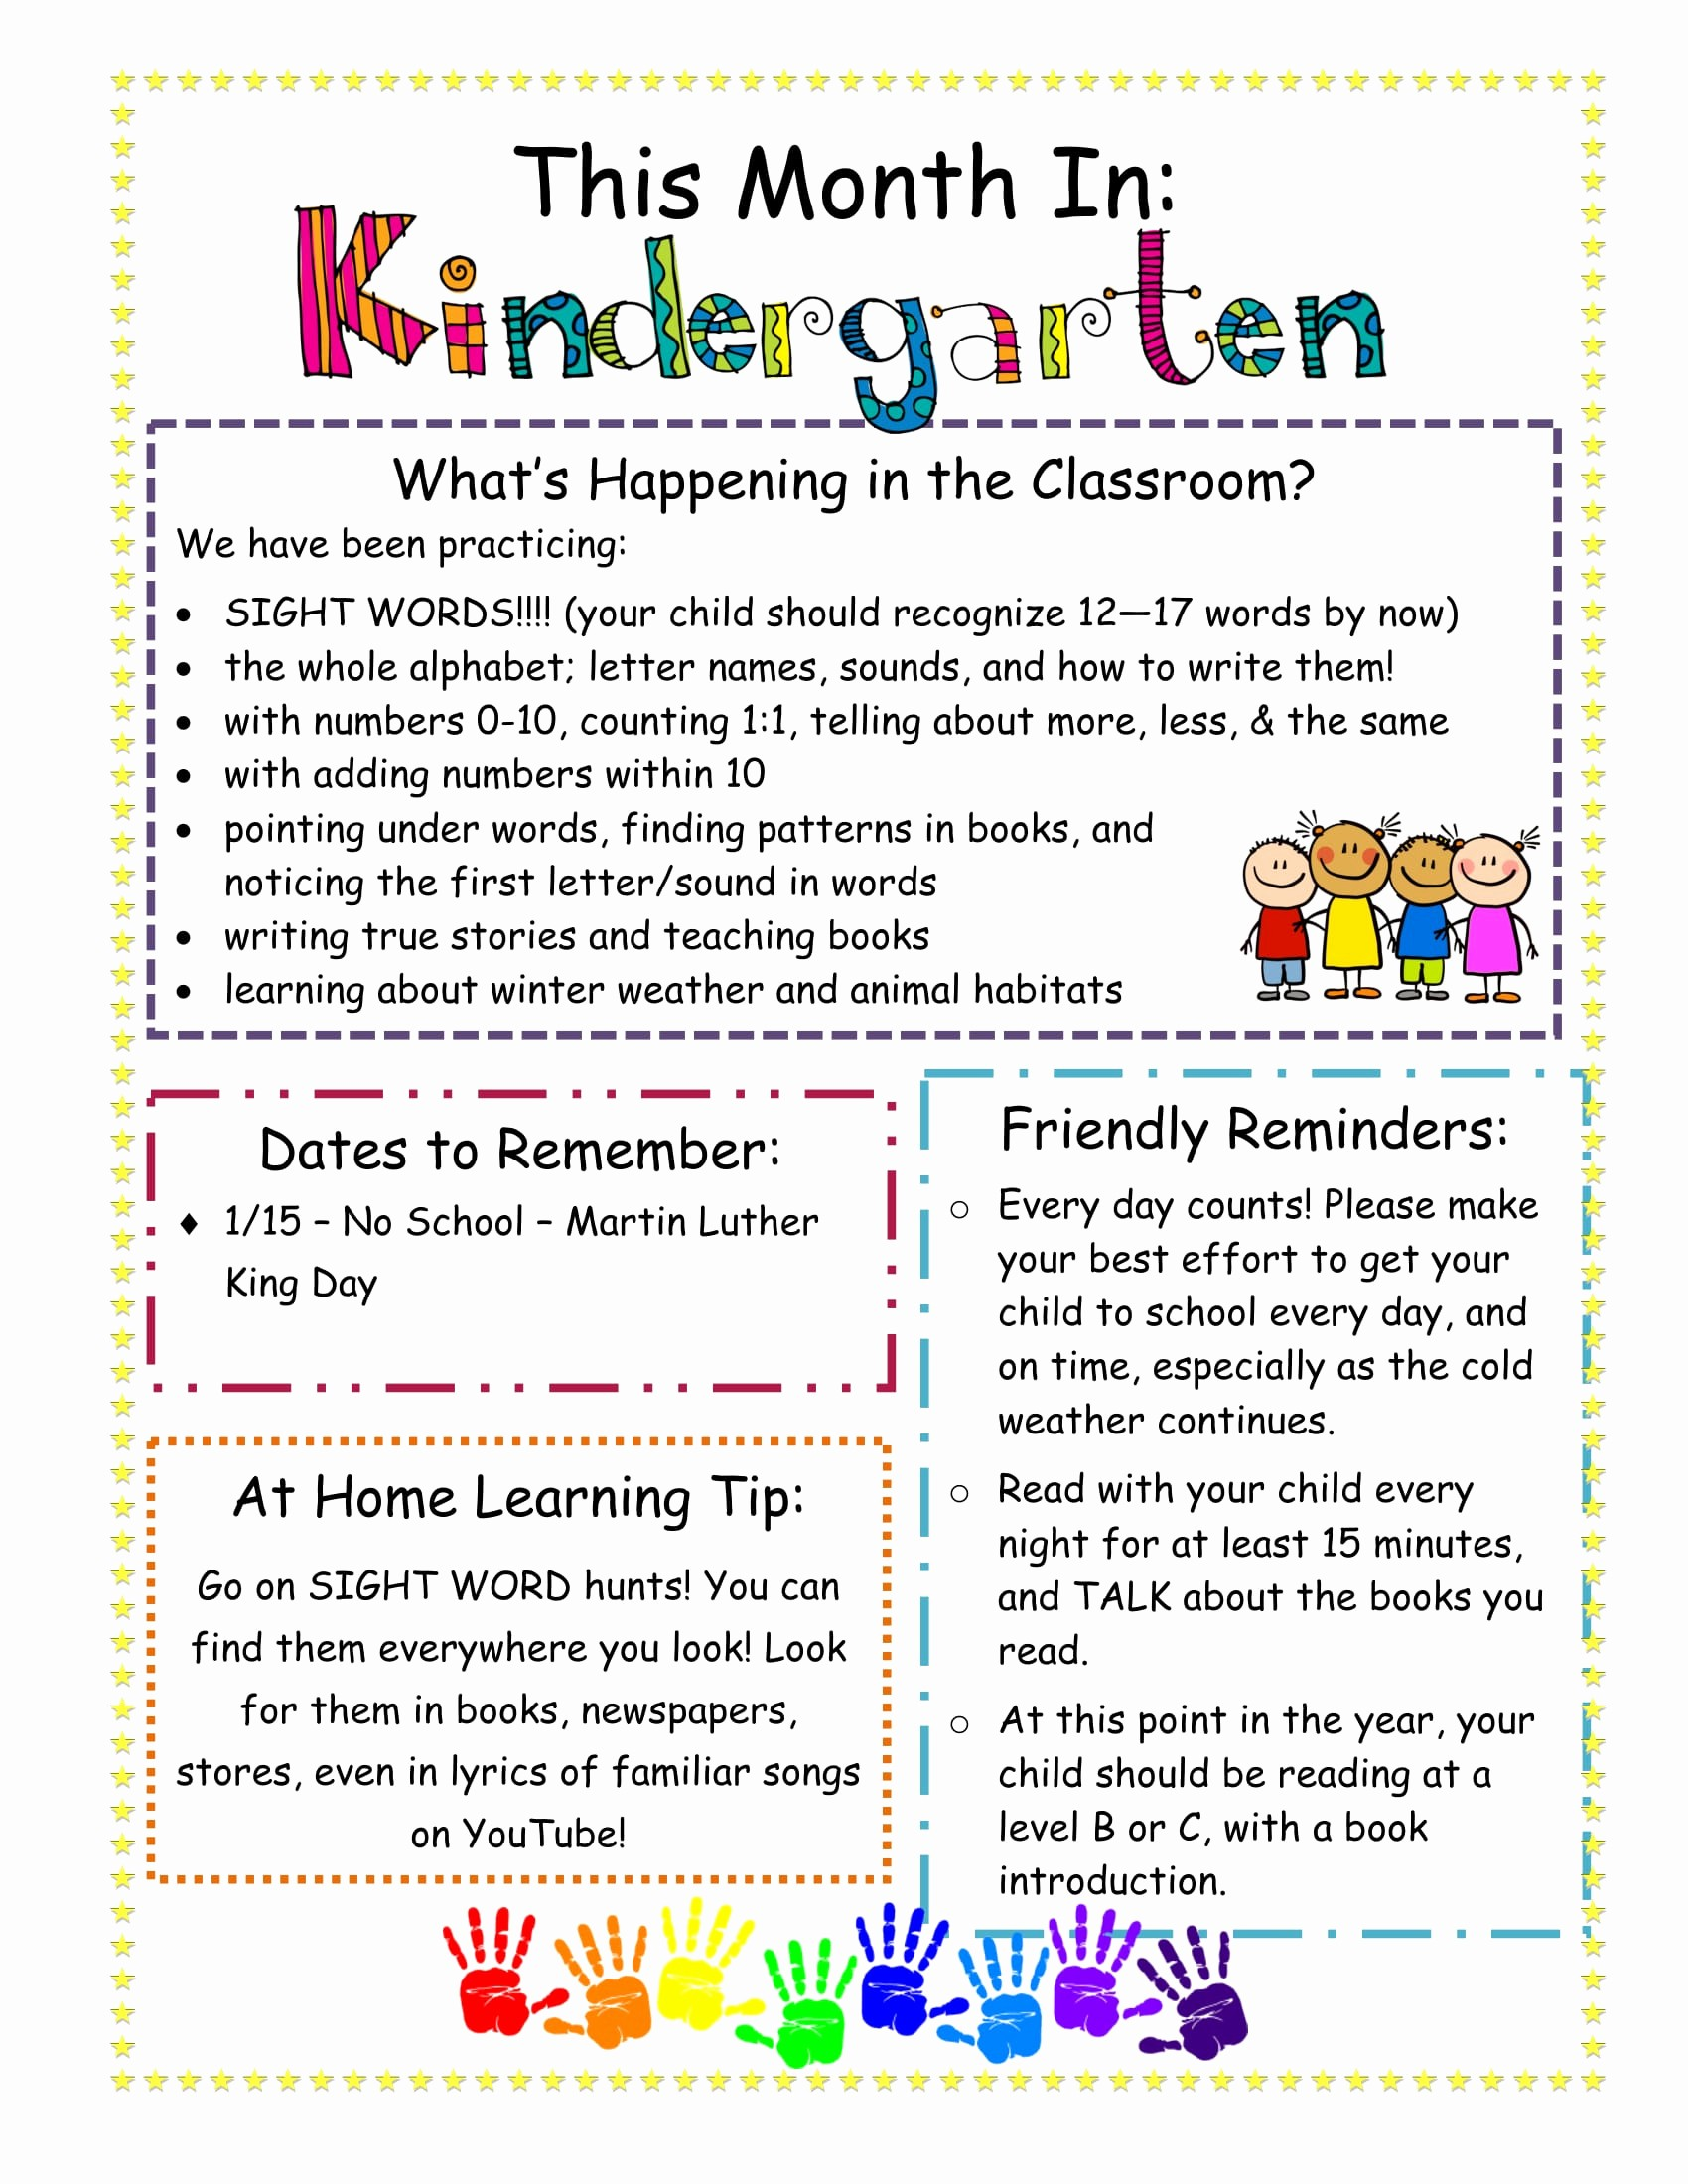 Newsletter for Parents From Teachers Fresh Grade Newsletters Archive 2017 2018 Ps Ms 29 the